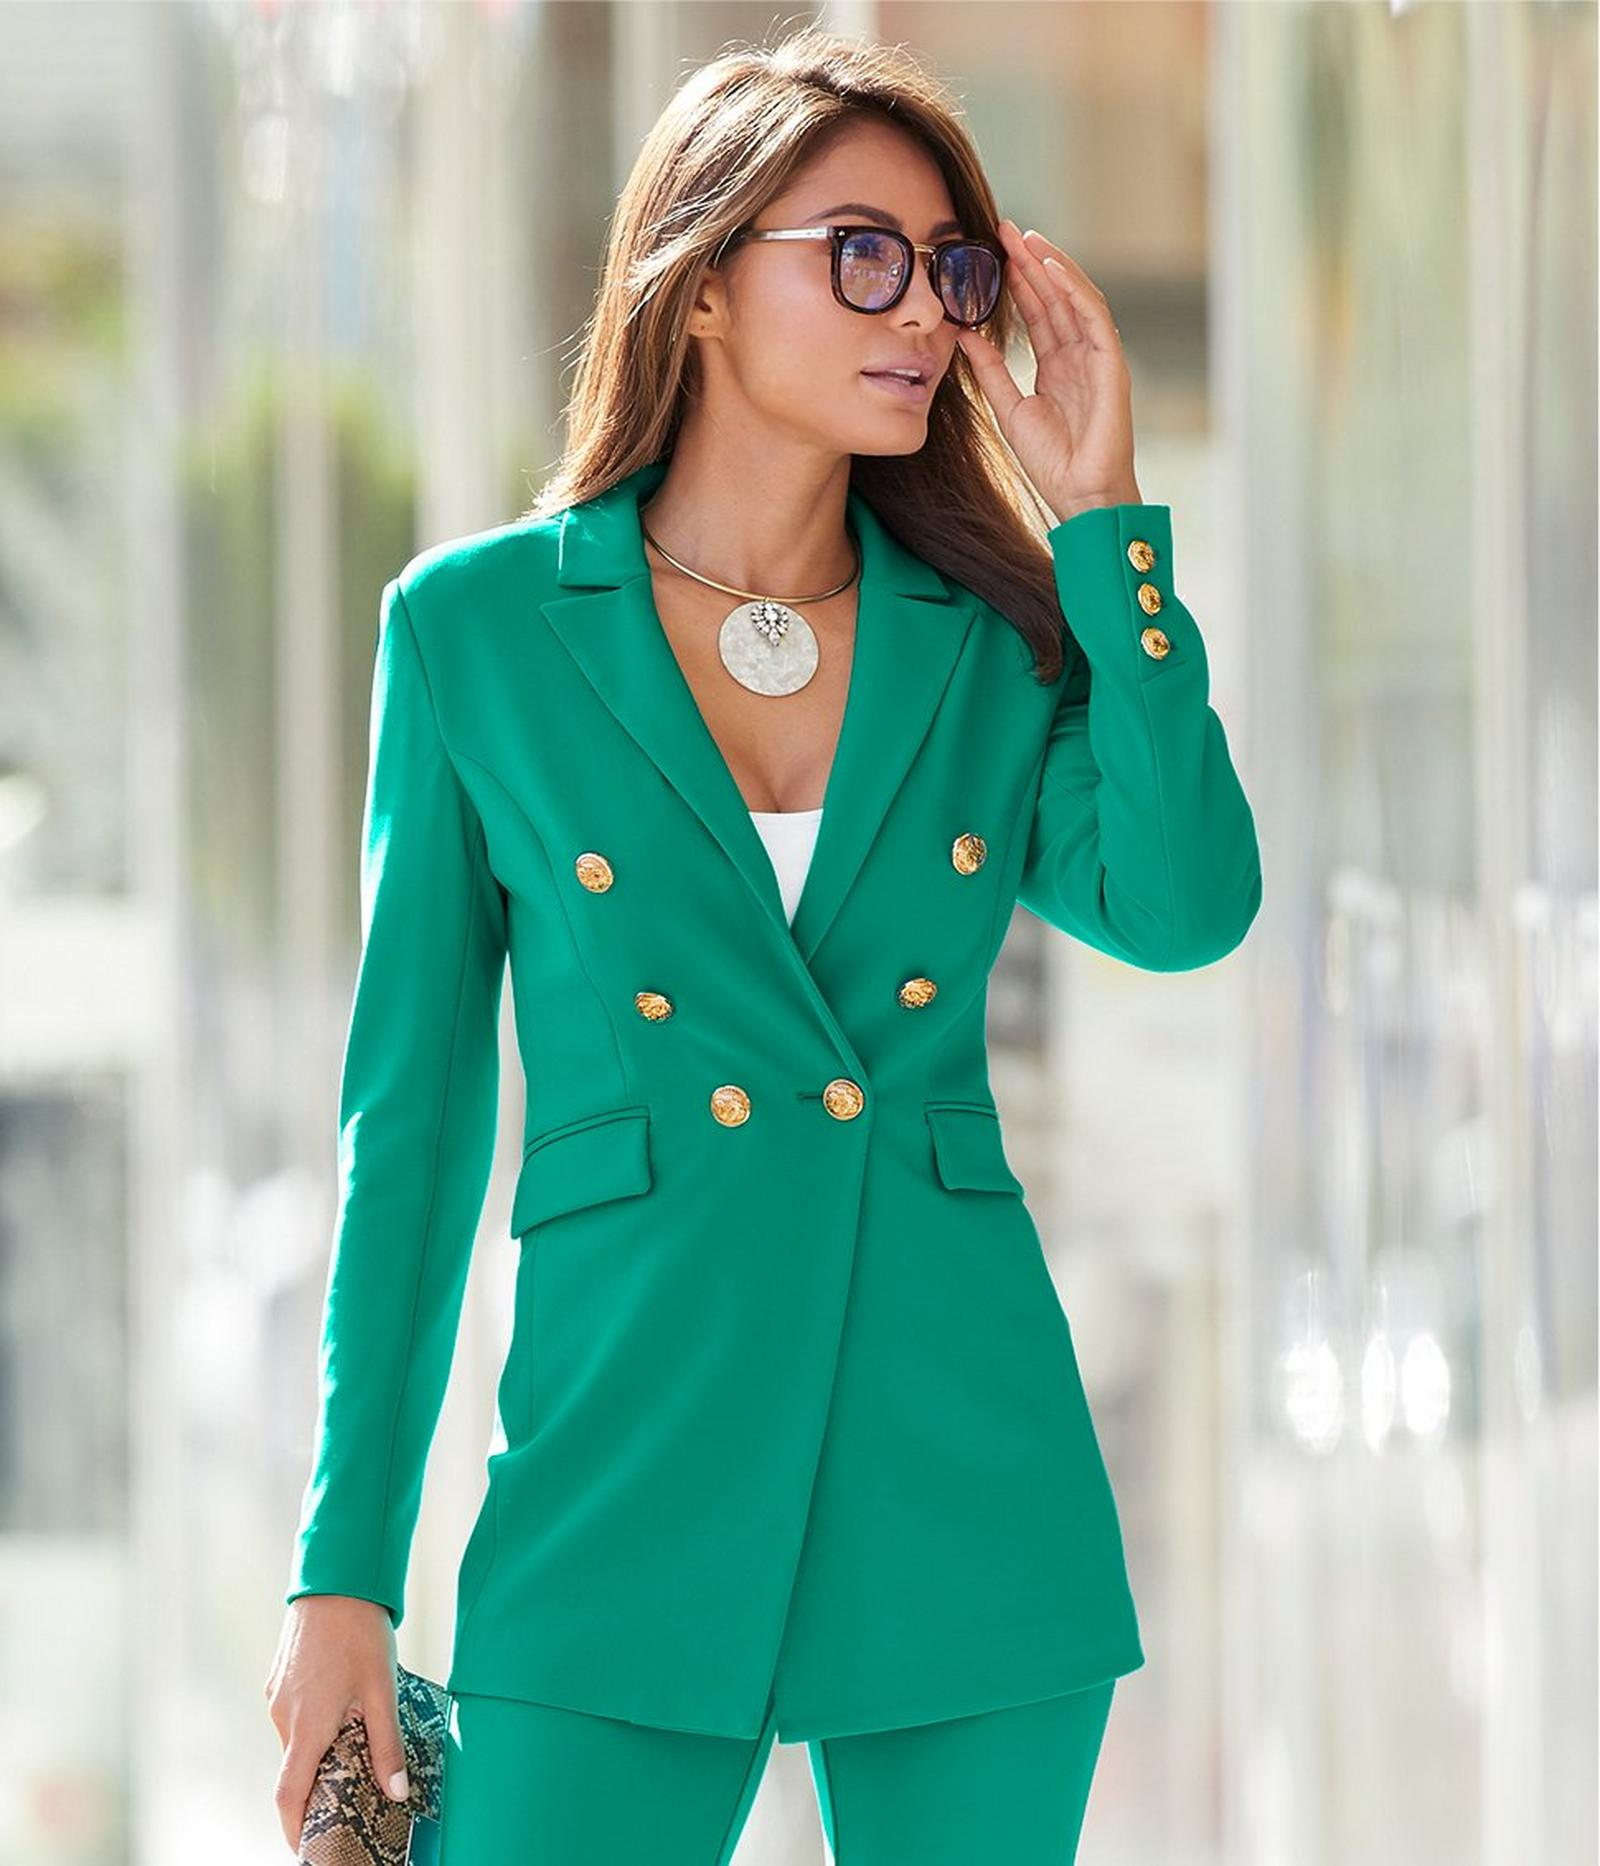 model wearing a jadeite double-breasted blazer, white tank top, jadeite pants, an opal choker necklace, and glasses.